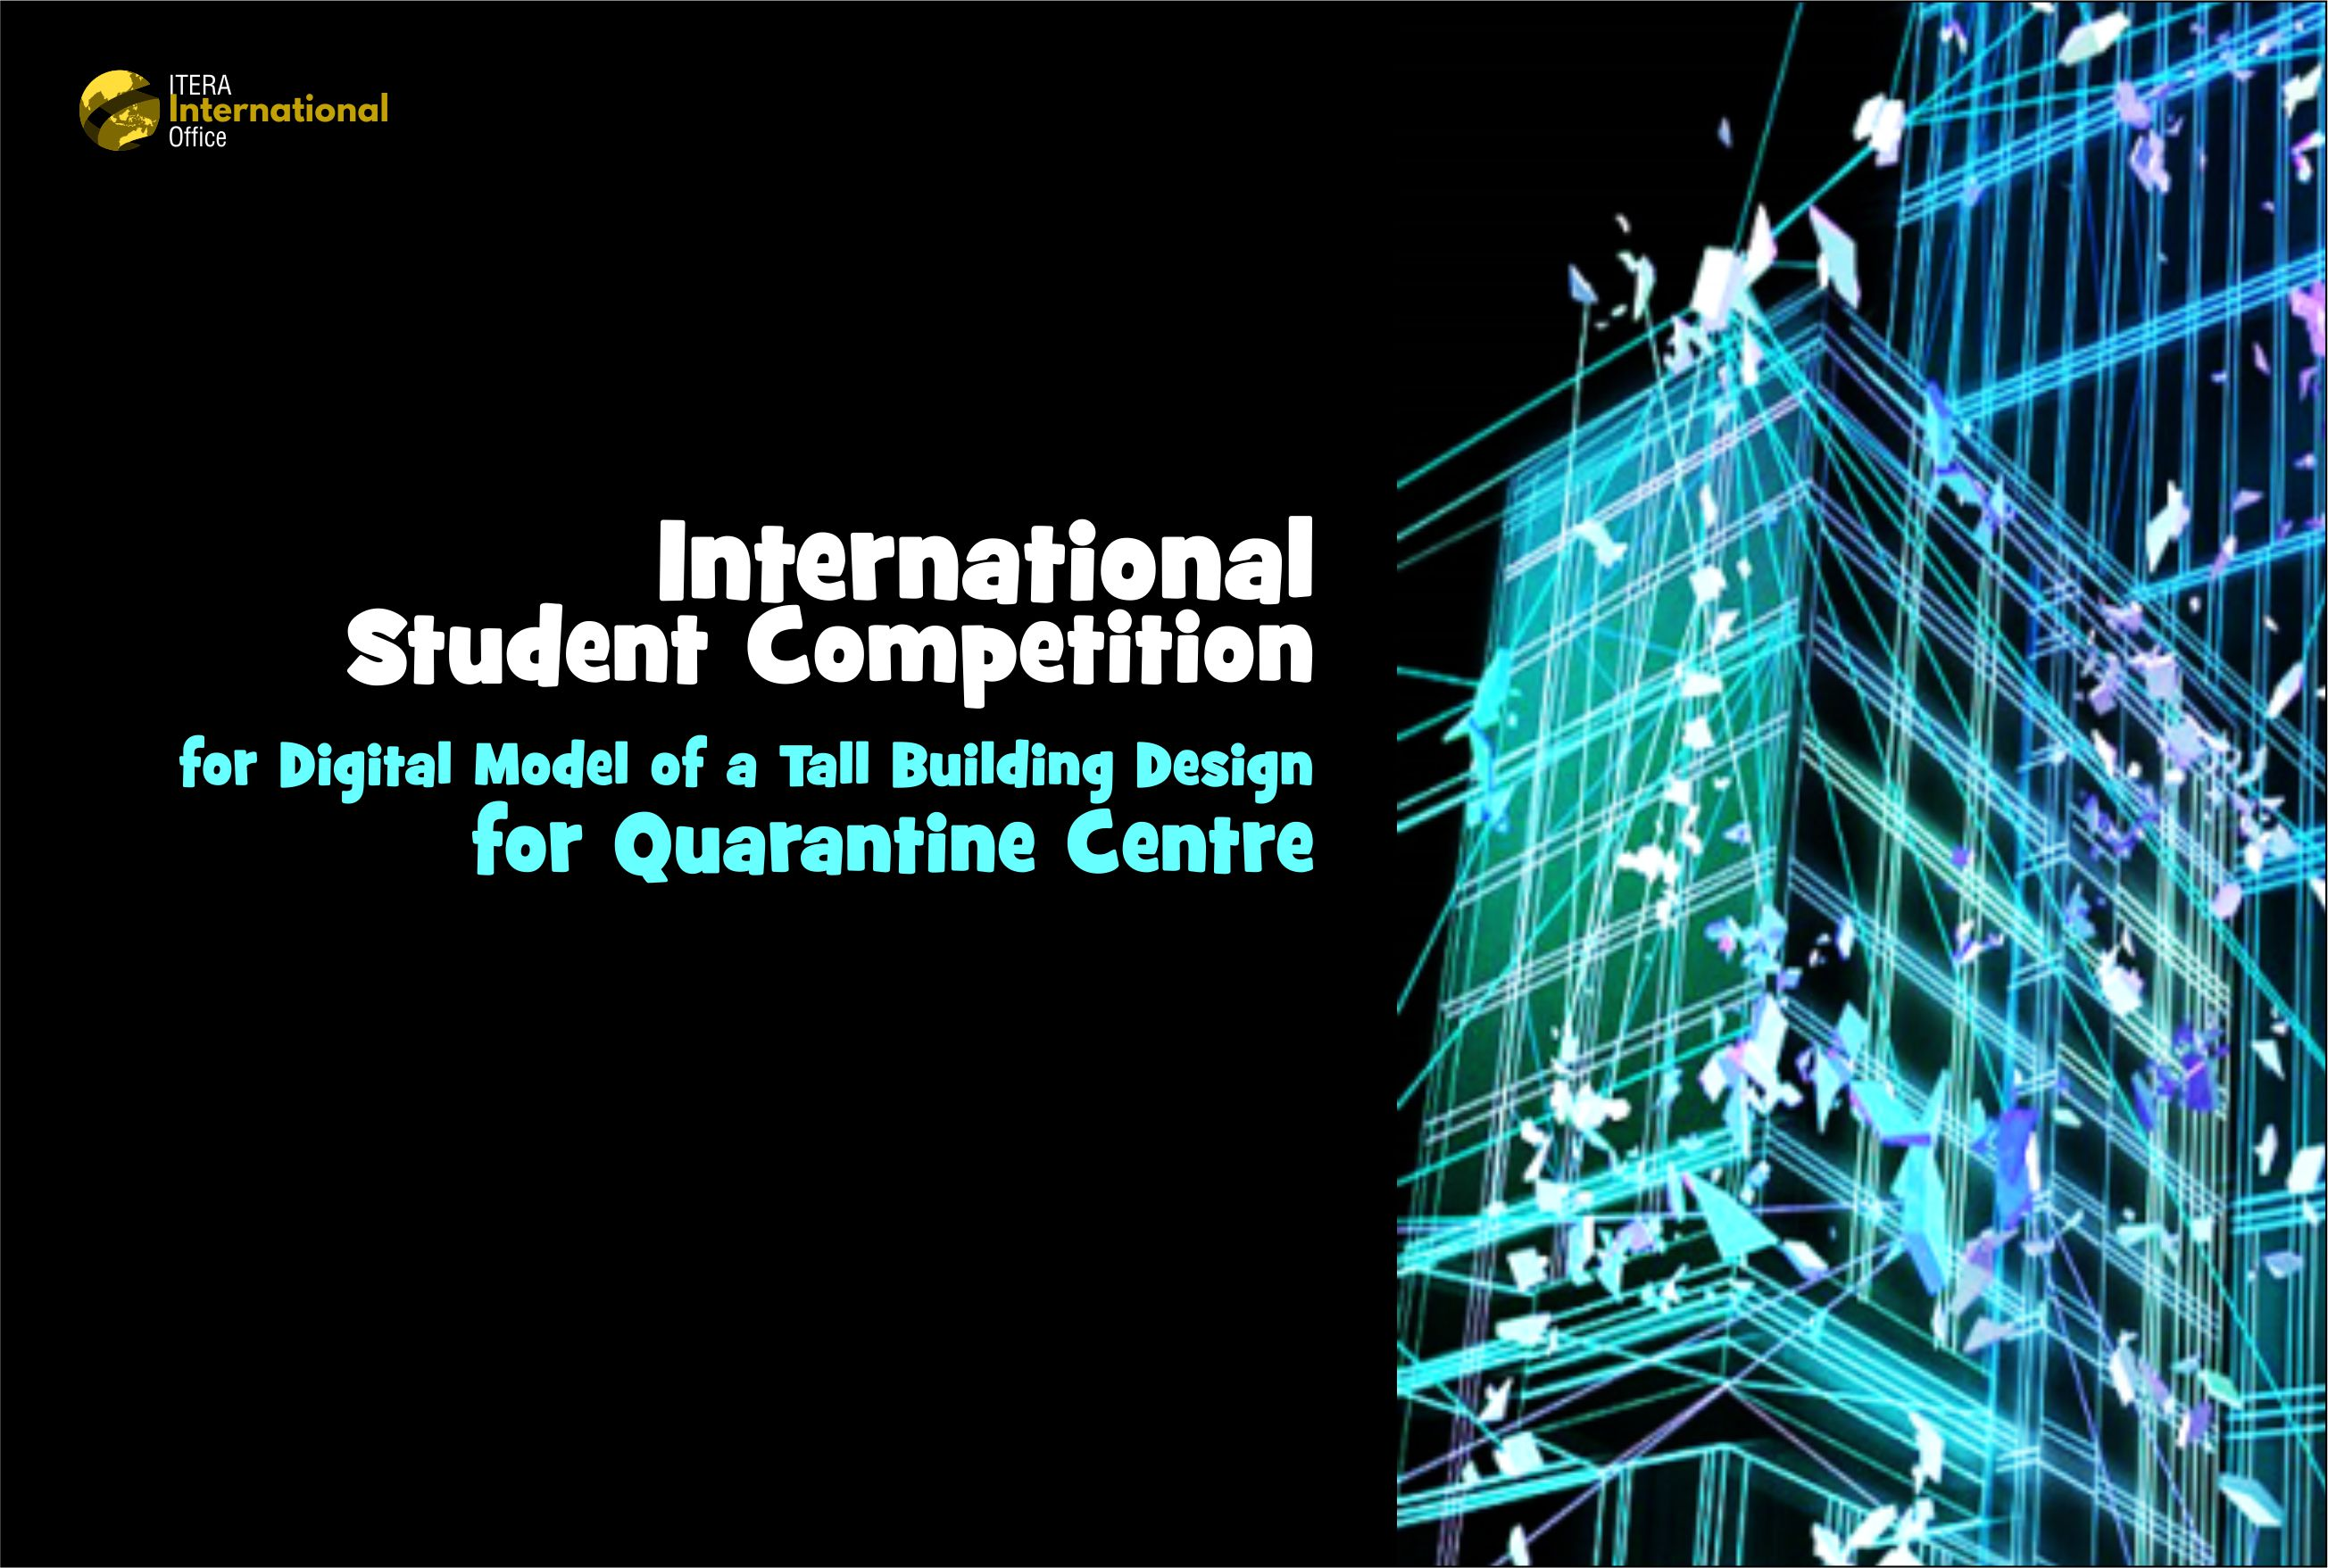 International Student Competition for Digital Model of a Tall Building Design for Quarantine Centre